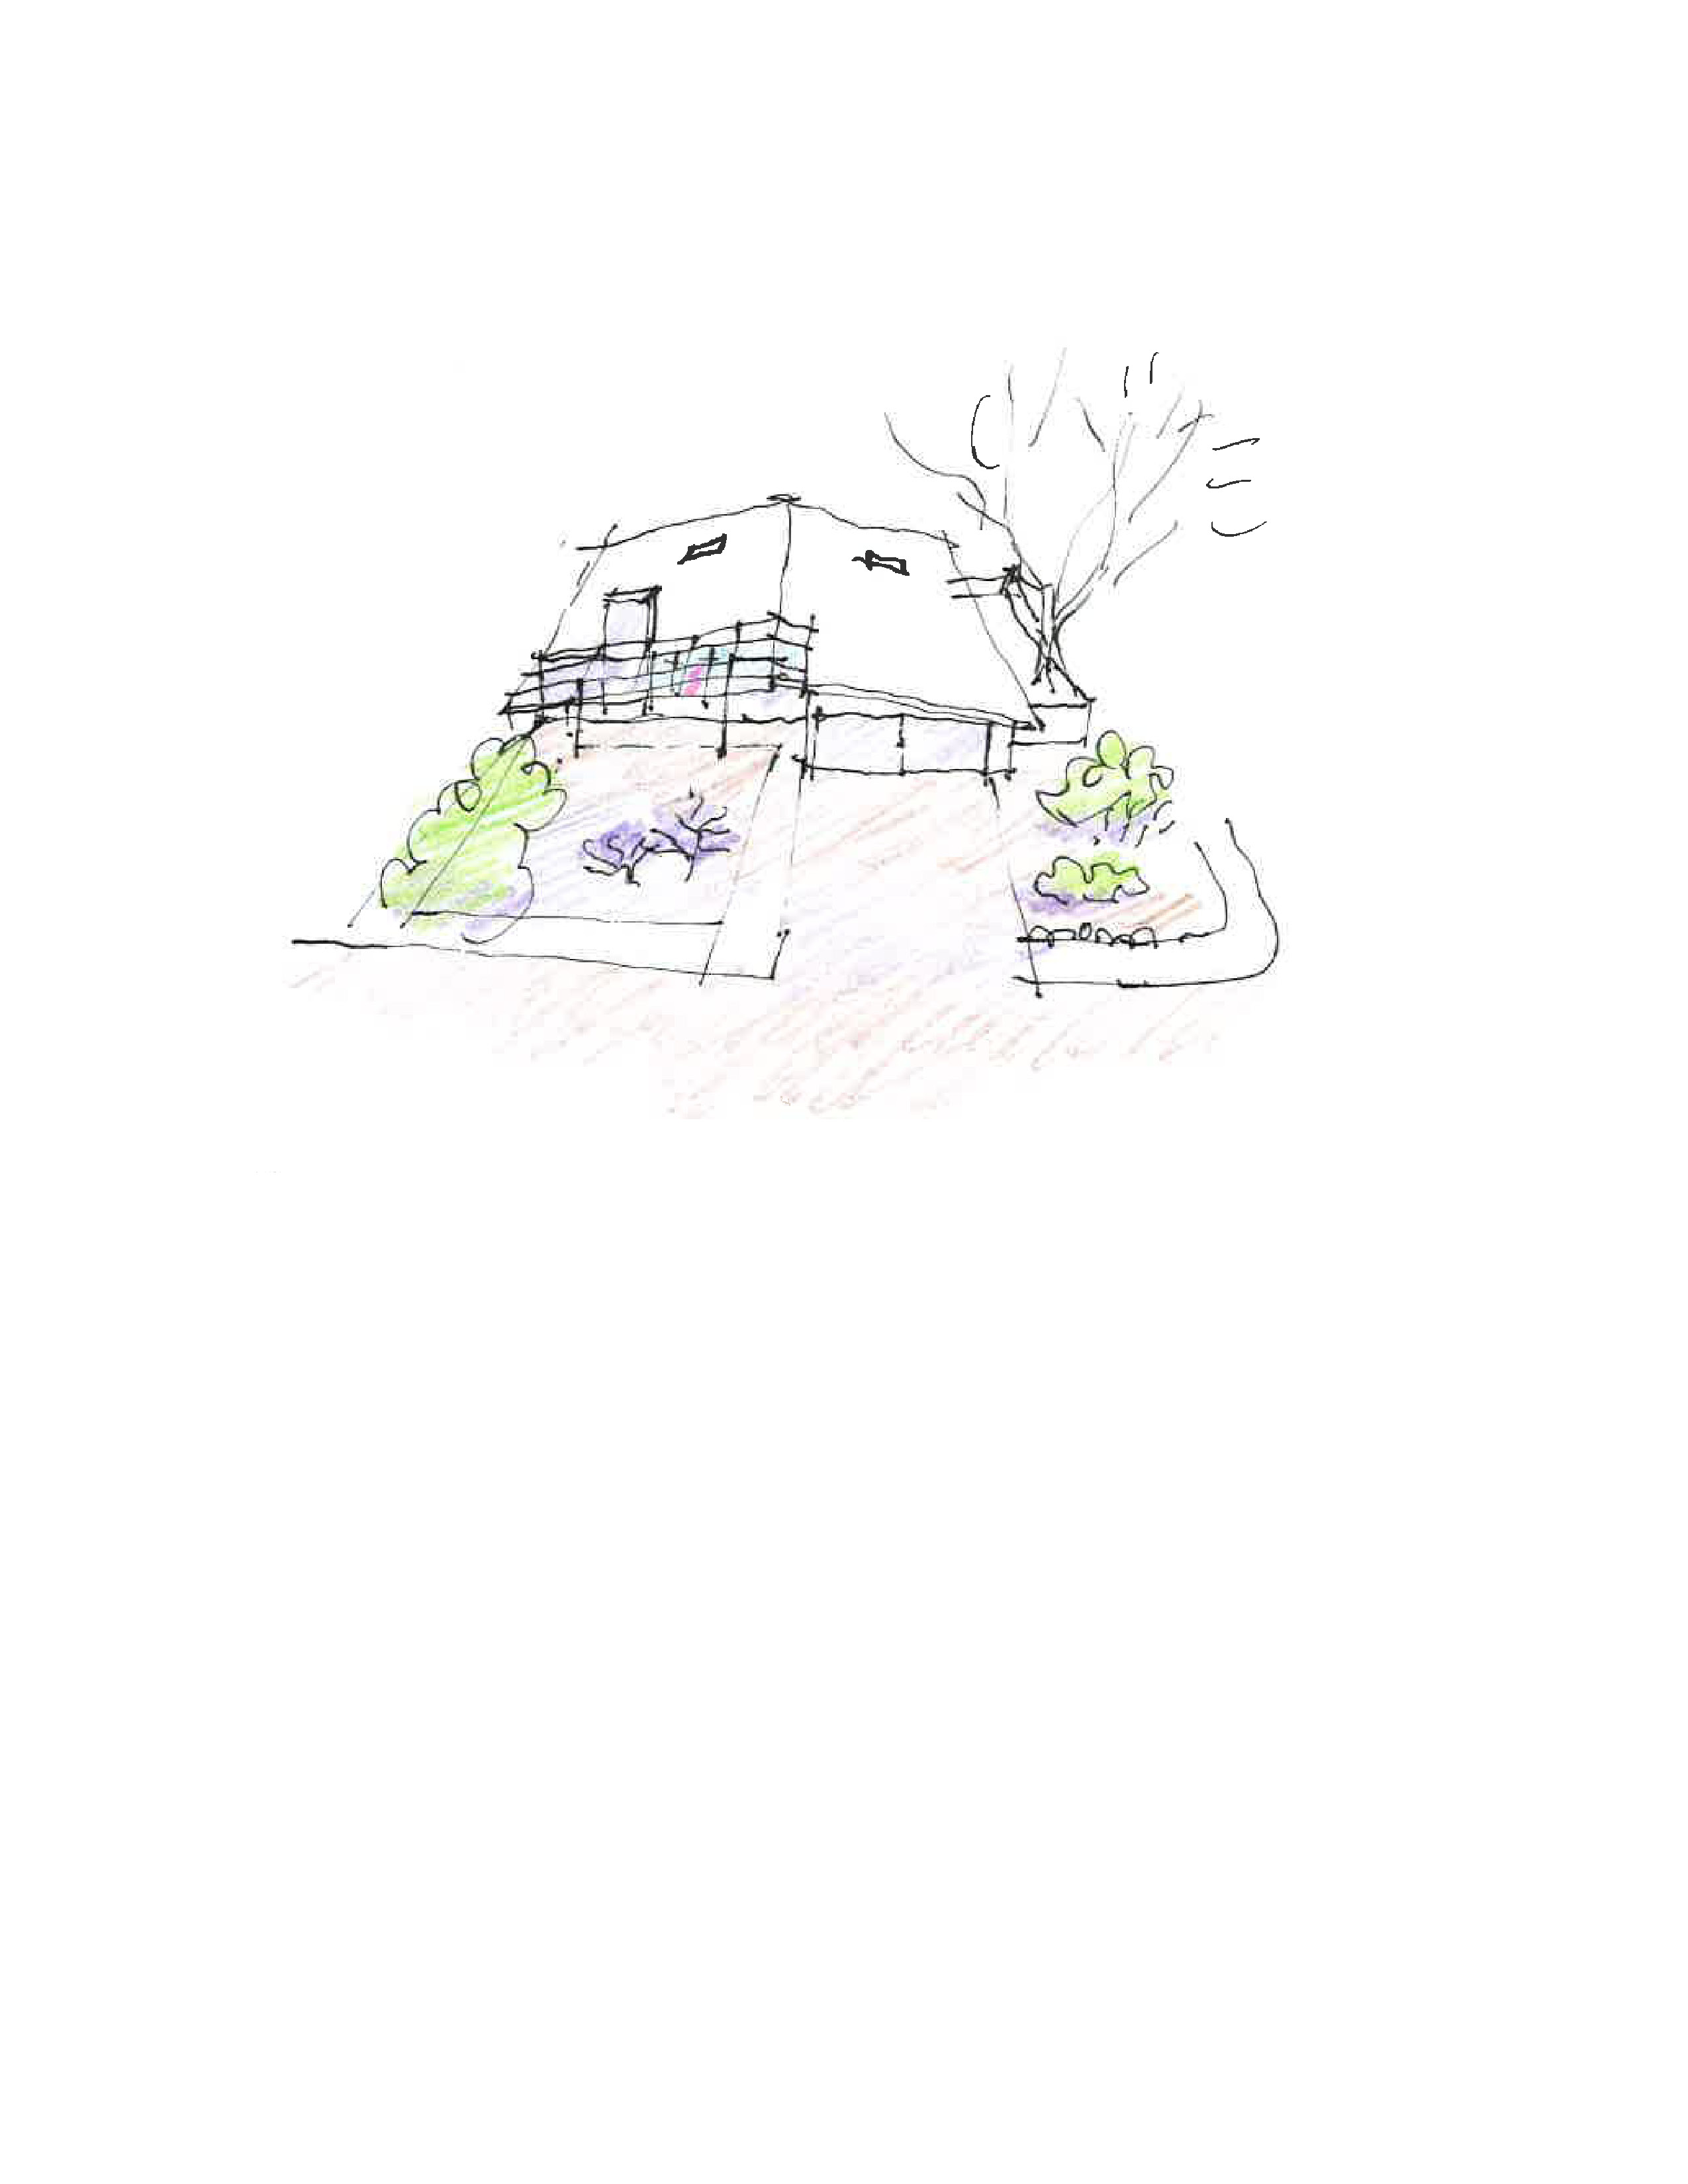 franks-sketch_image1-3_01-02-20123